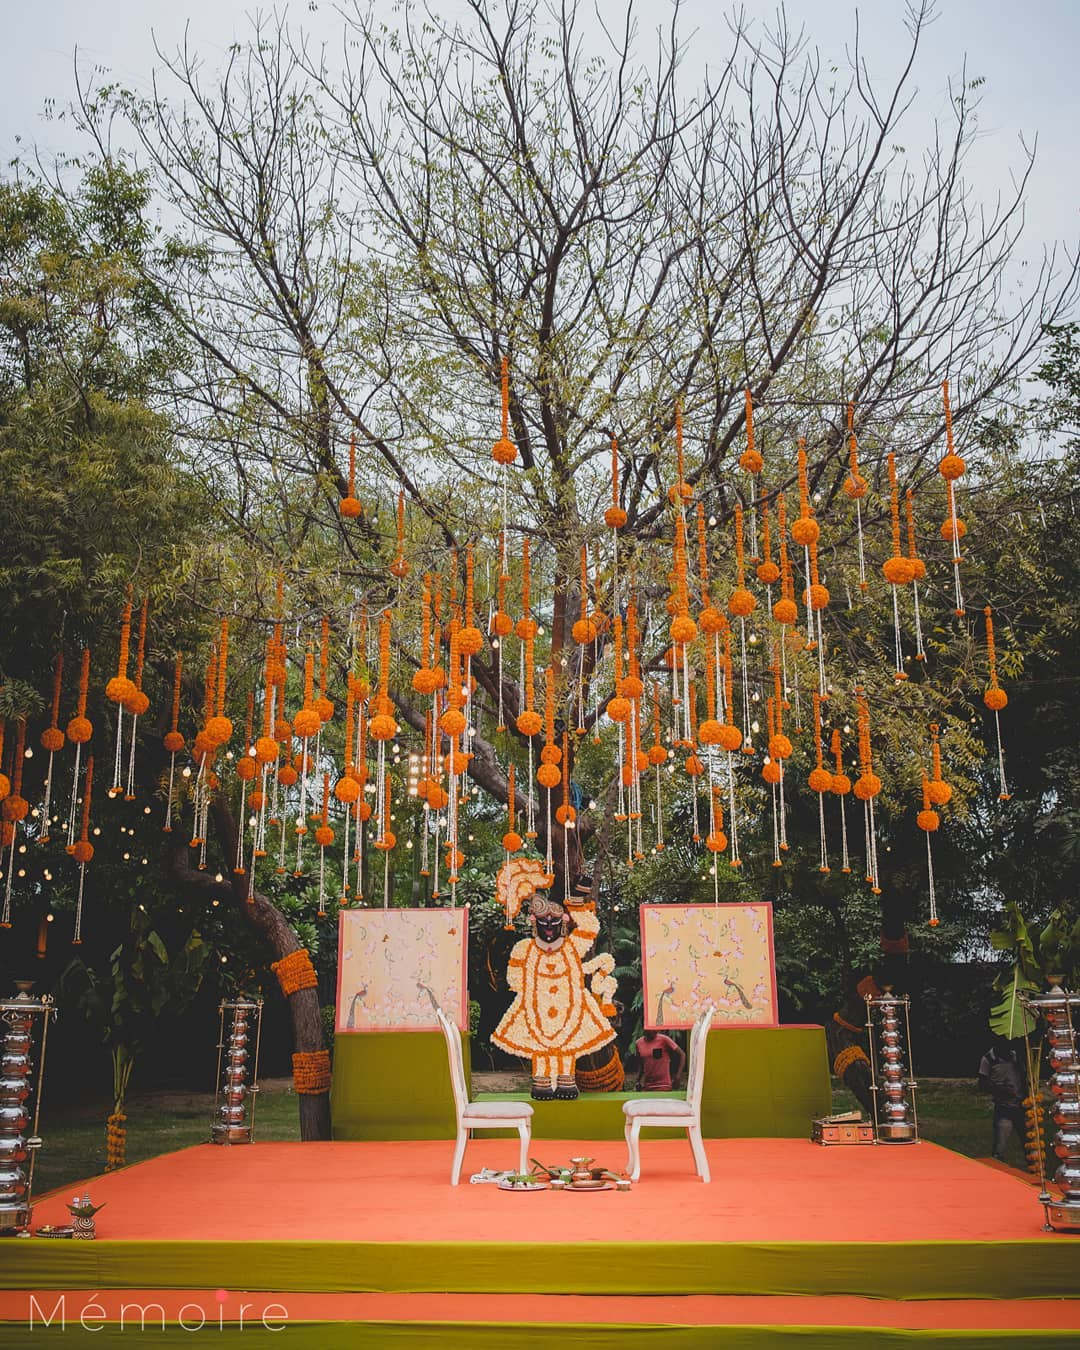 open wedding mandap decoration with Marigold Strings Hanging from a Tree's Branches and with white wedding mandap chairs